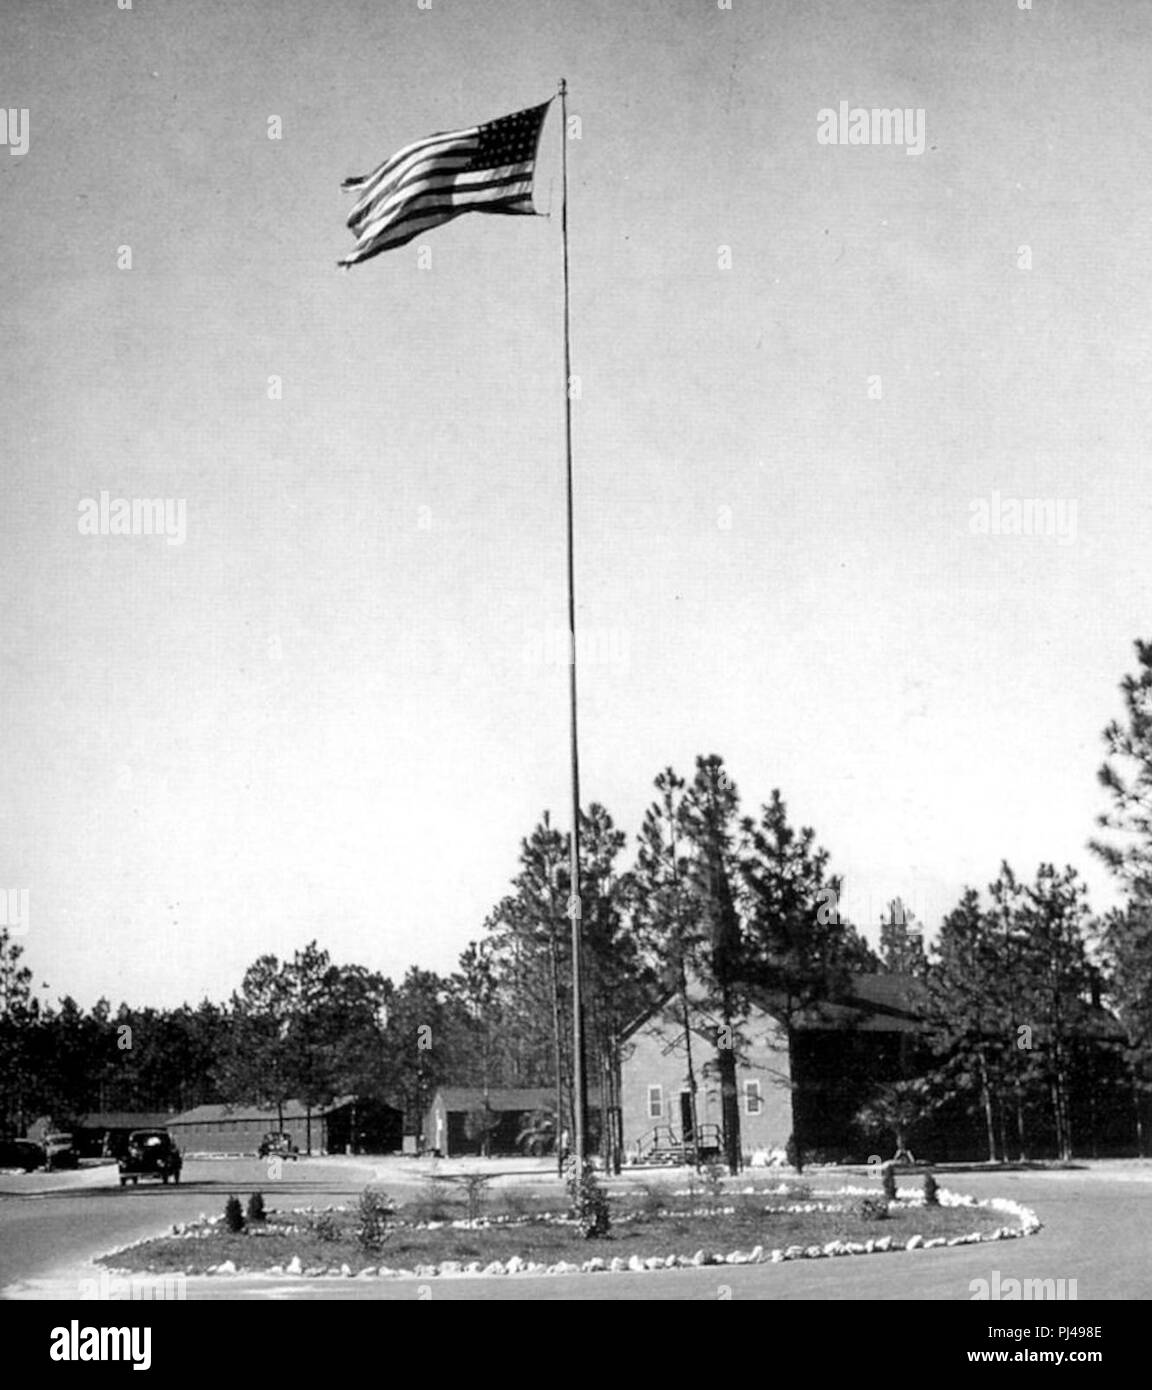 Bainbridge Army Airfield - Post Flagpole. - Stock Image